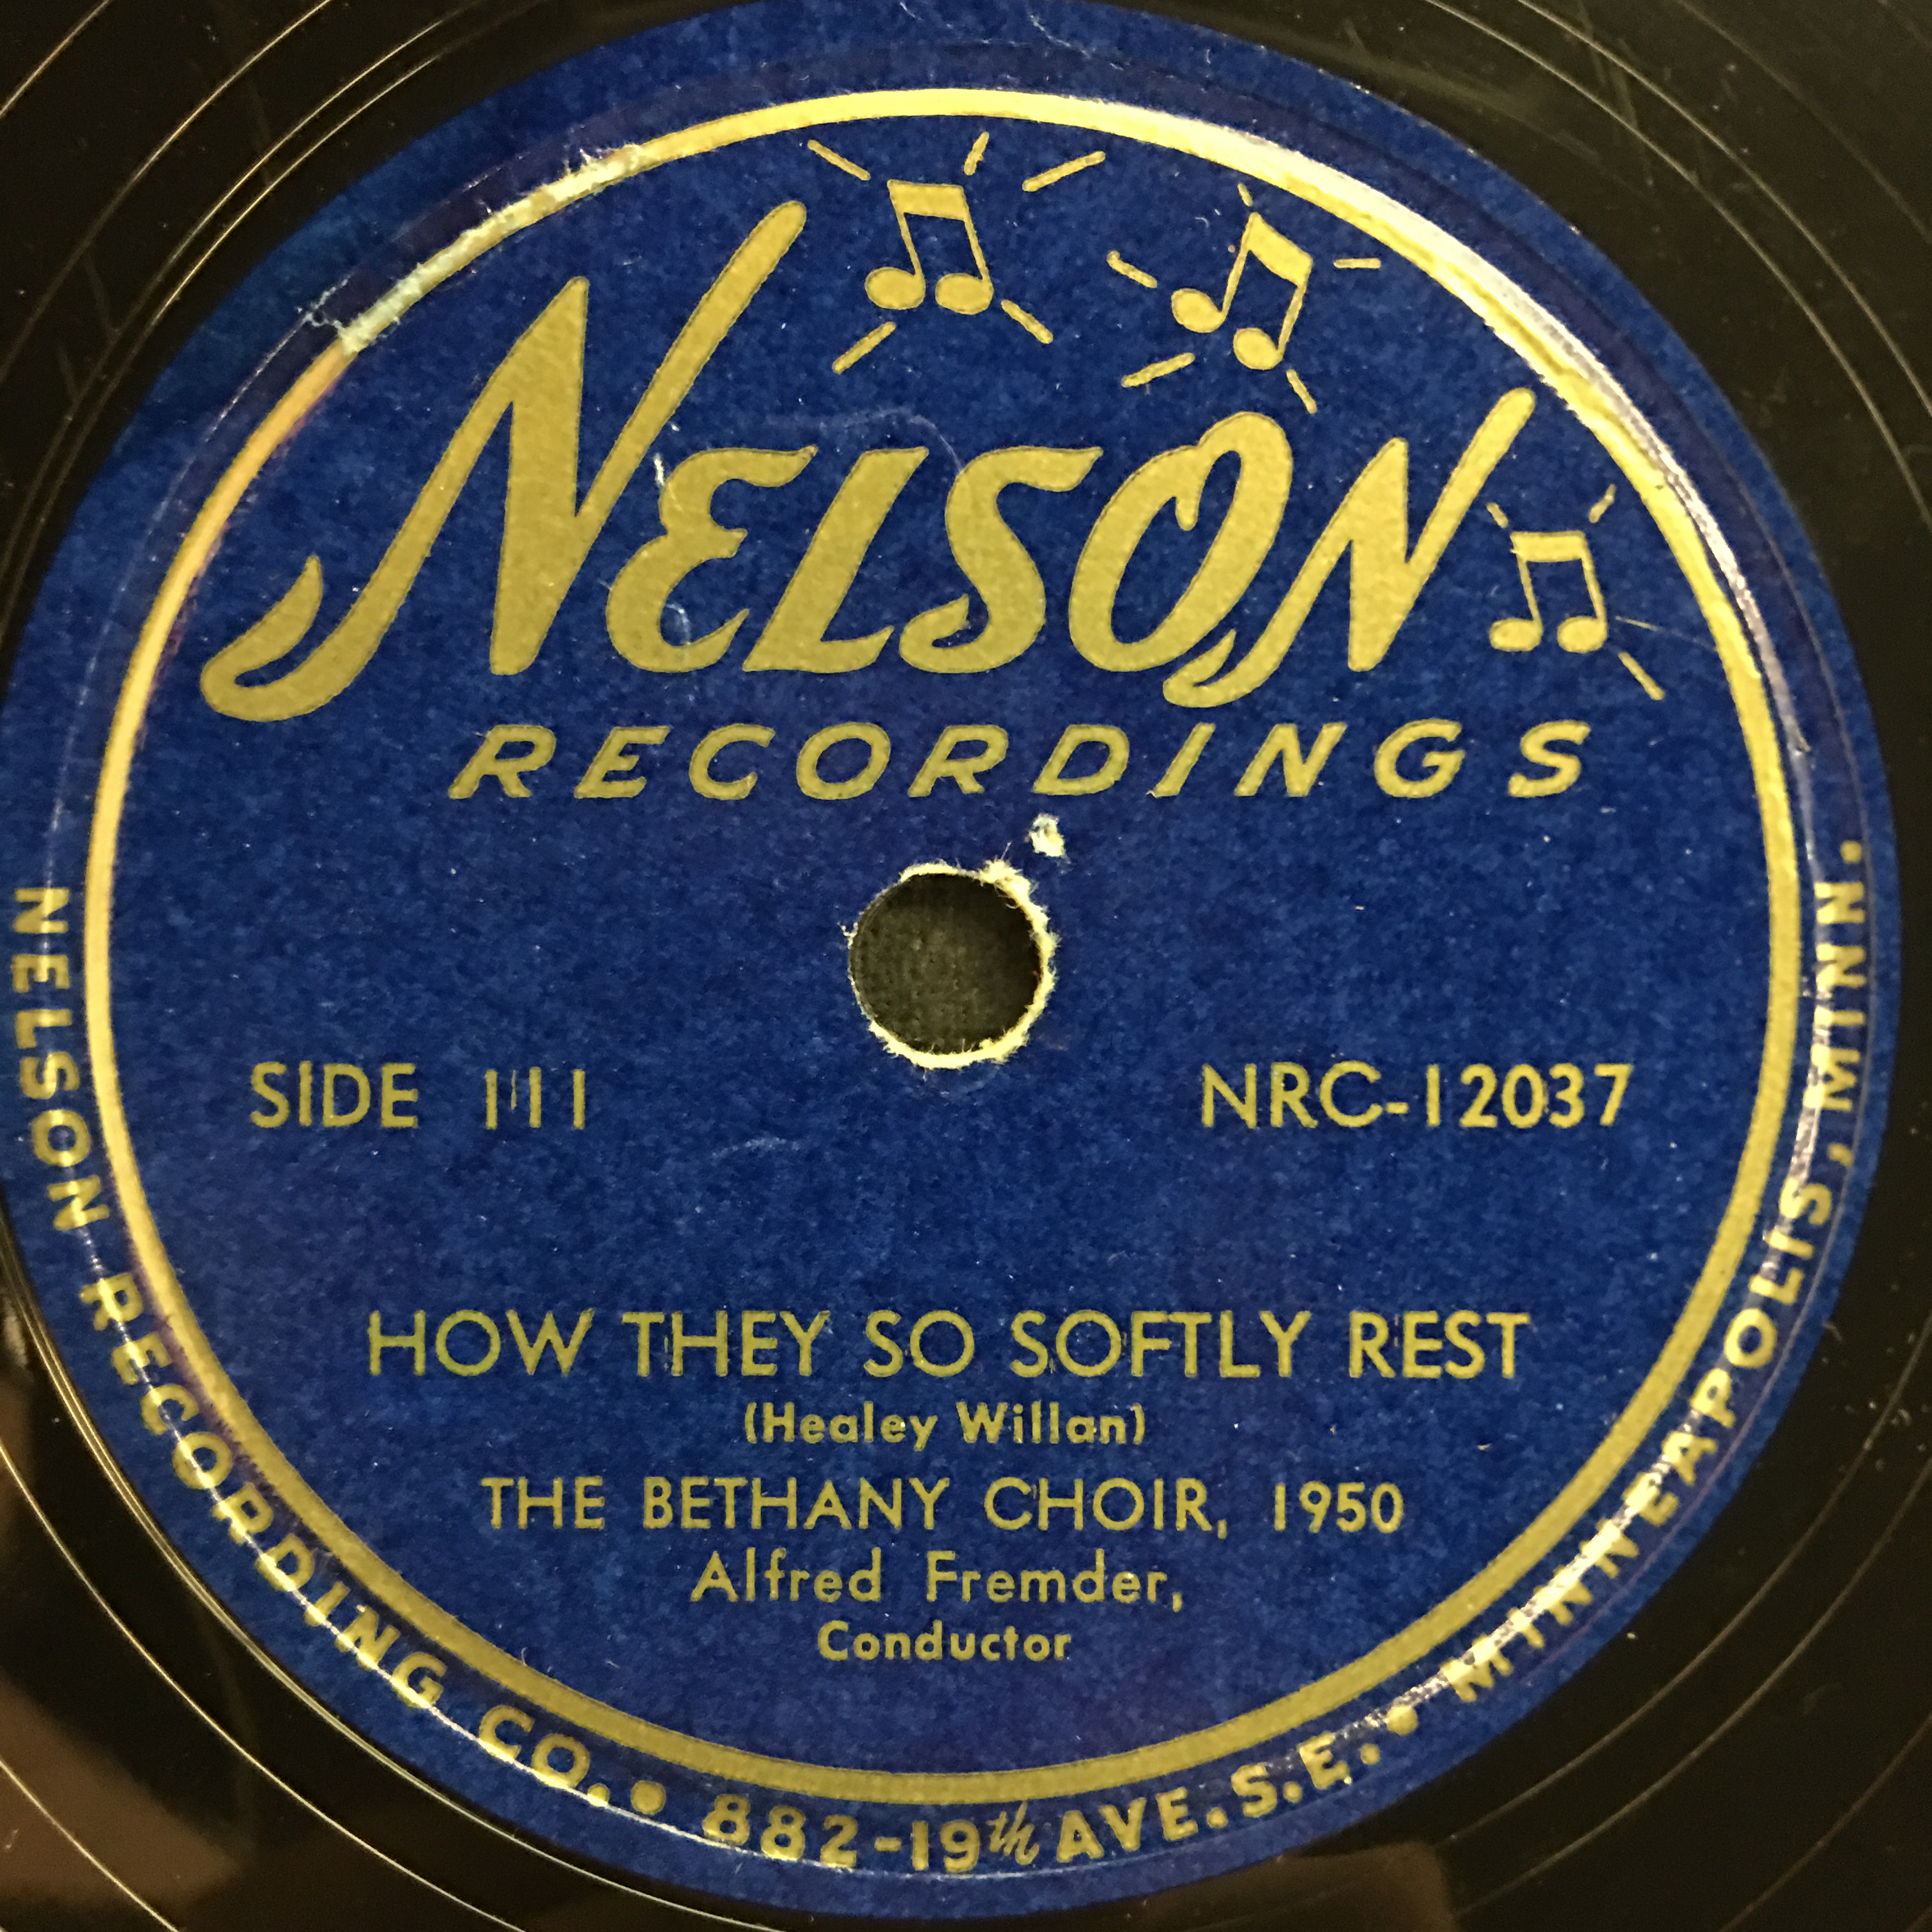 The Bethany Choir 1950: Sing Praises, Ye Faithful Vinyl 2 Side 1